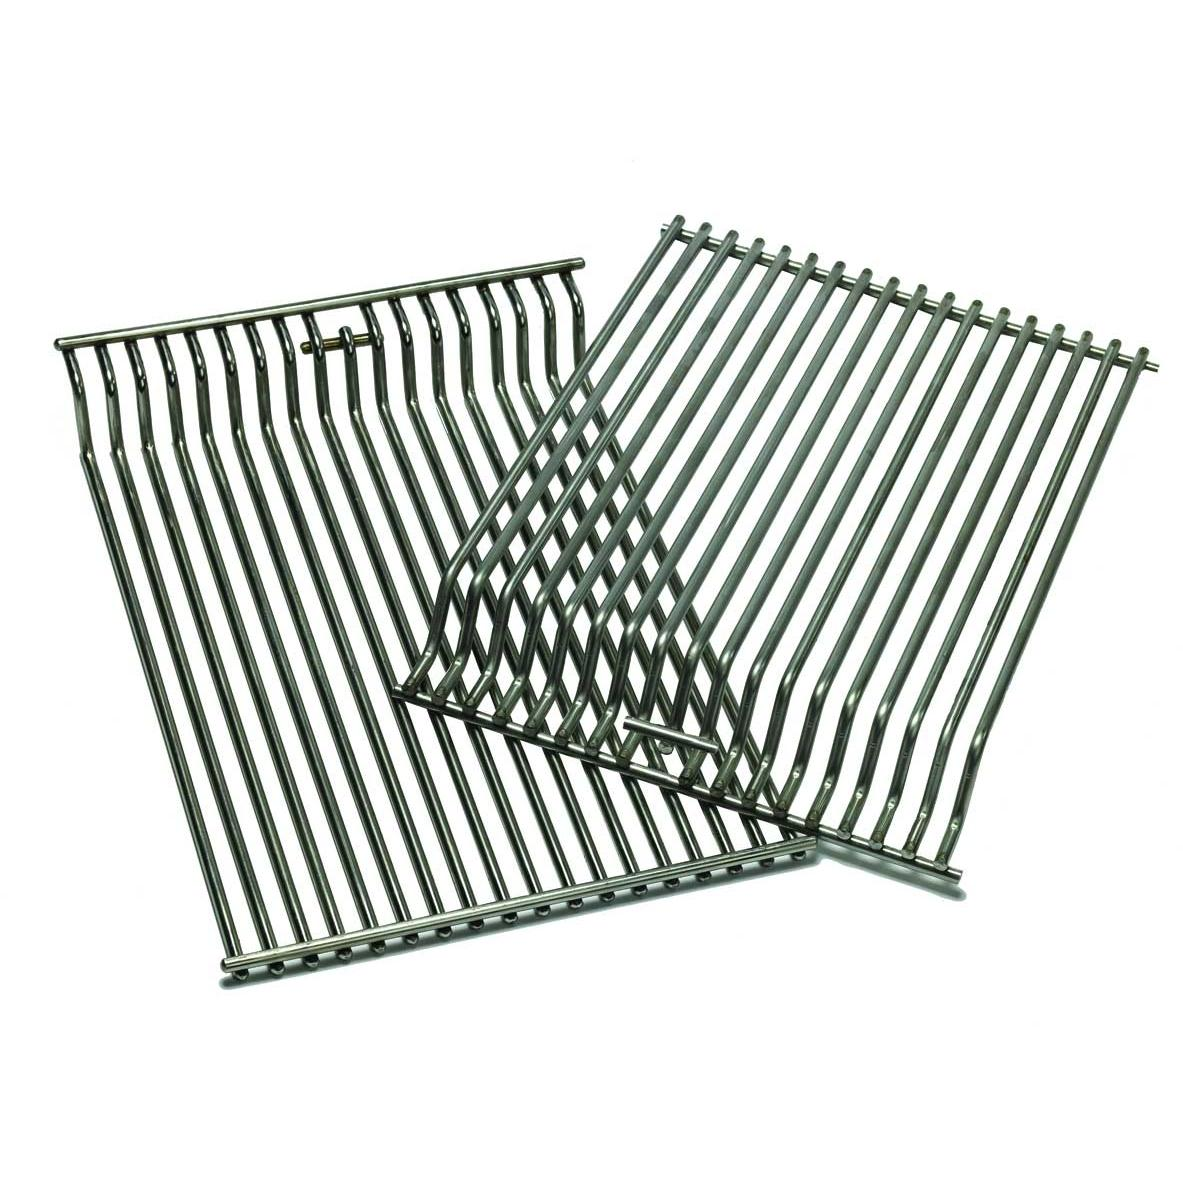 Broilmaster Stainless Steel Rod Cooking Grids For Size 4 Gas Grills (Set Of 2) 2526481